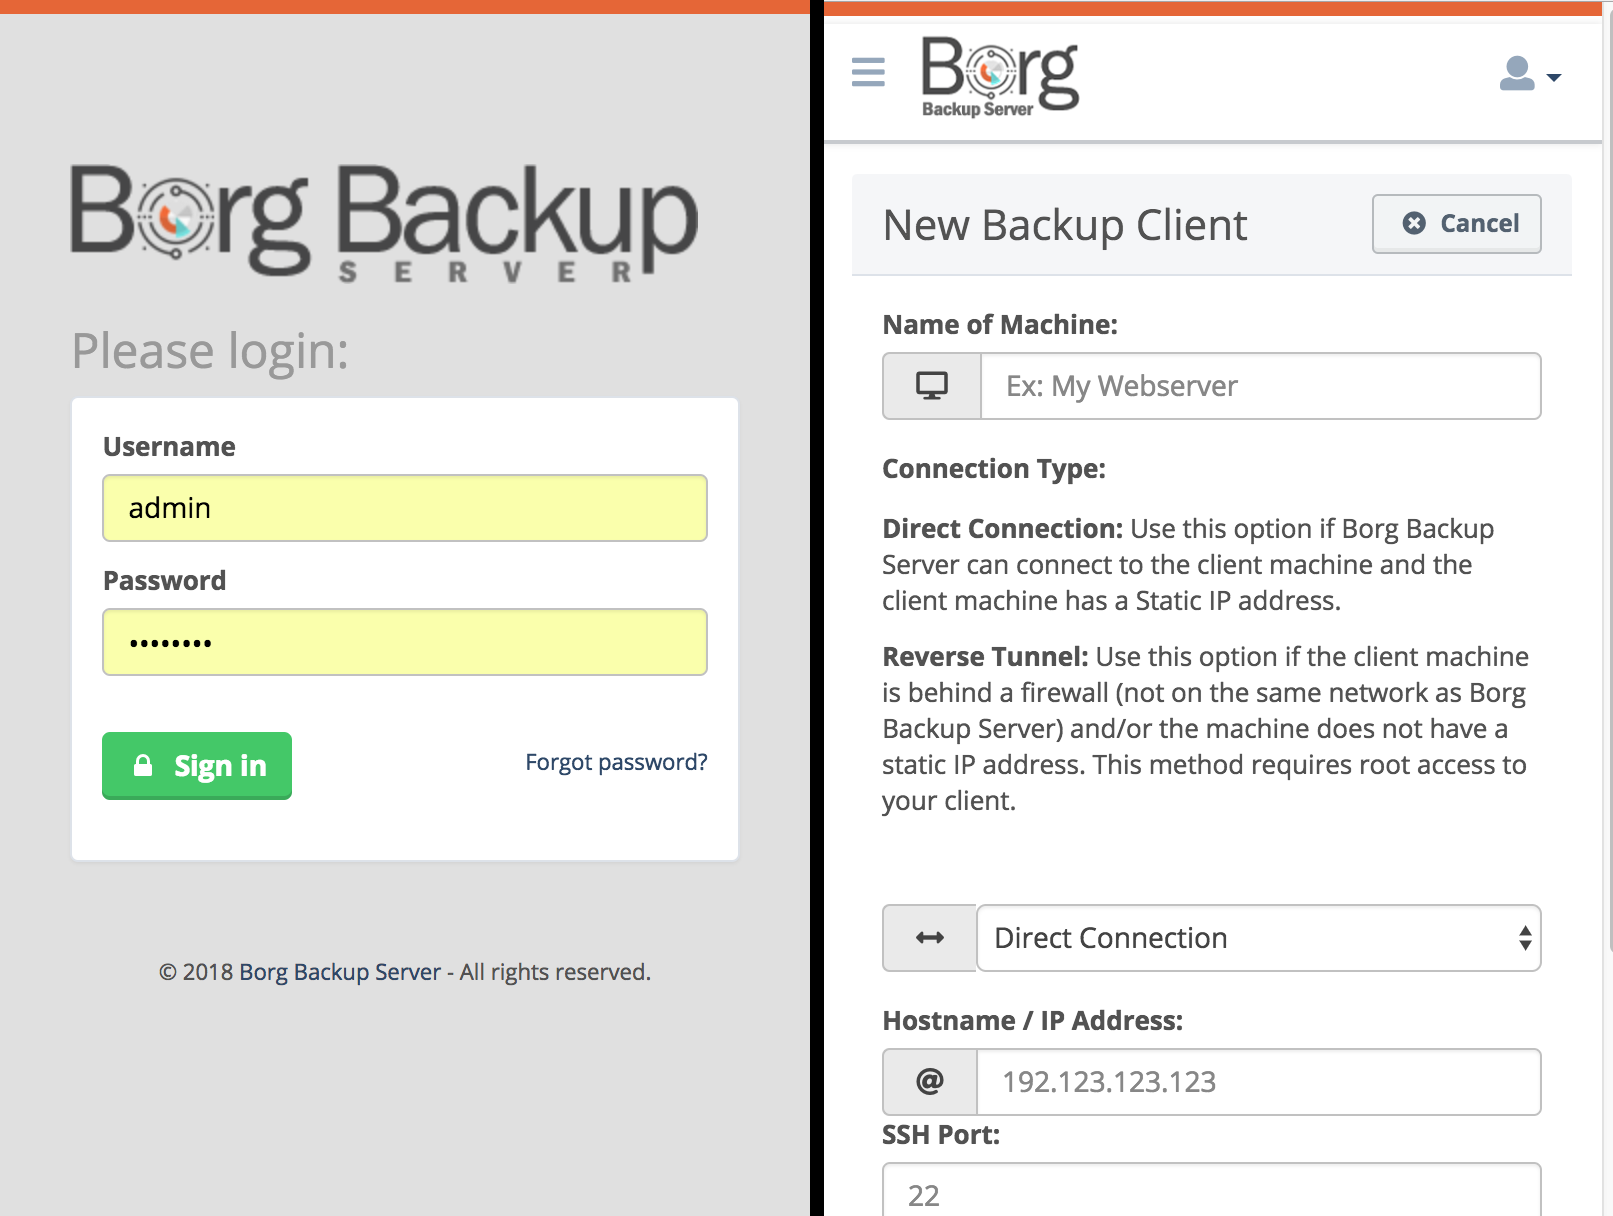 Discussion · Issue #1 · marcpope/borgbackupserver · GitHub